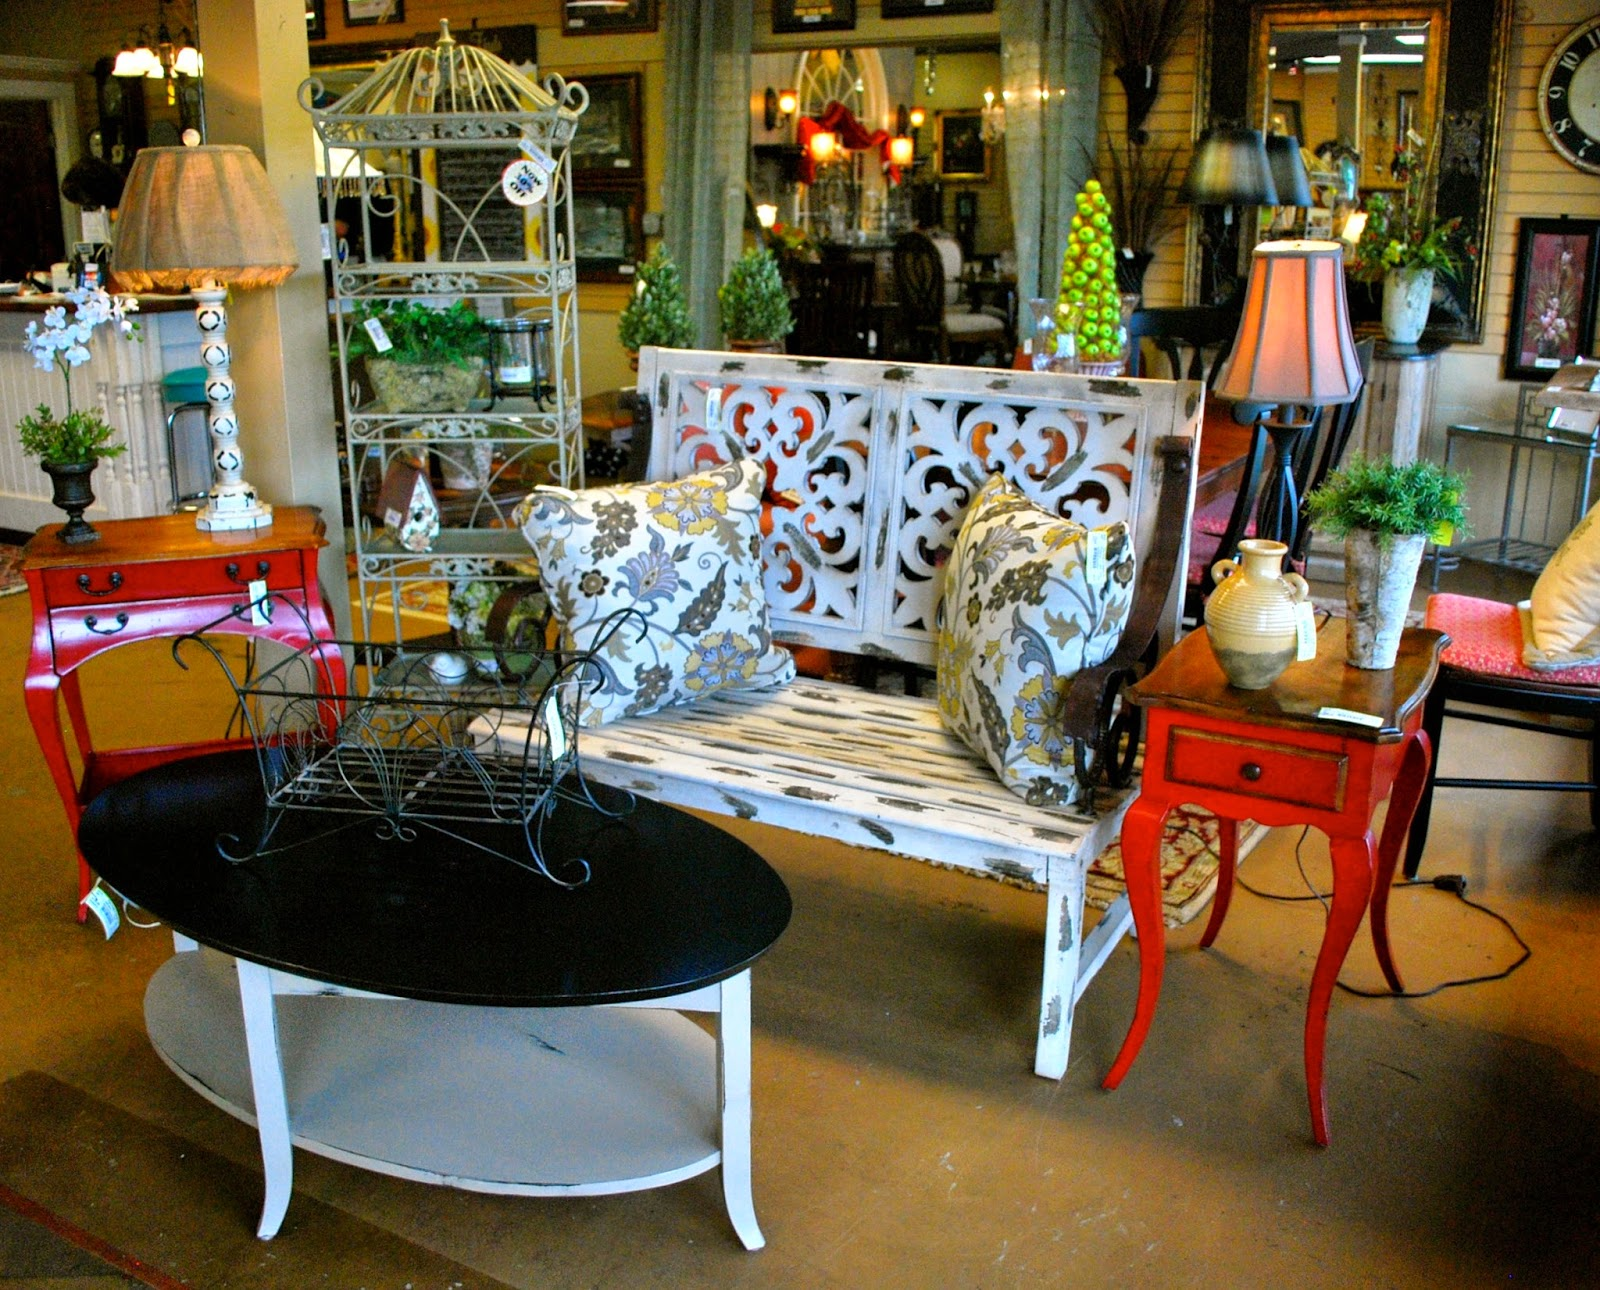 Luxury Home Decor Stores: Luxury Home Furnishings For Less At Fun Finds And Designs